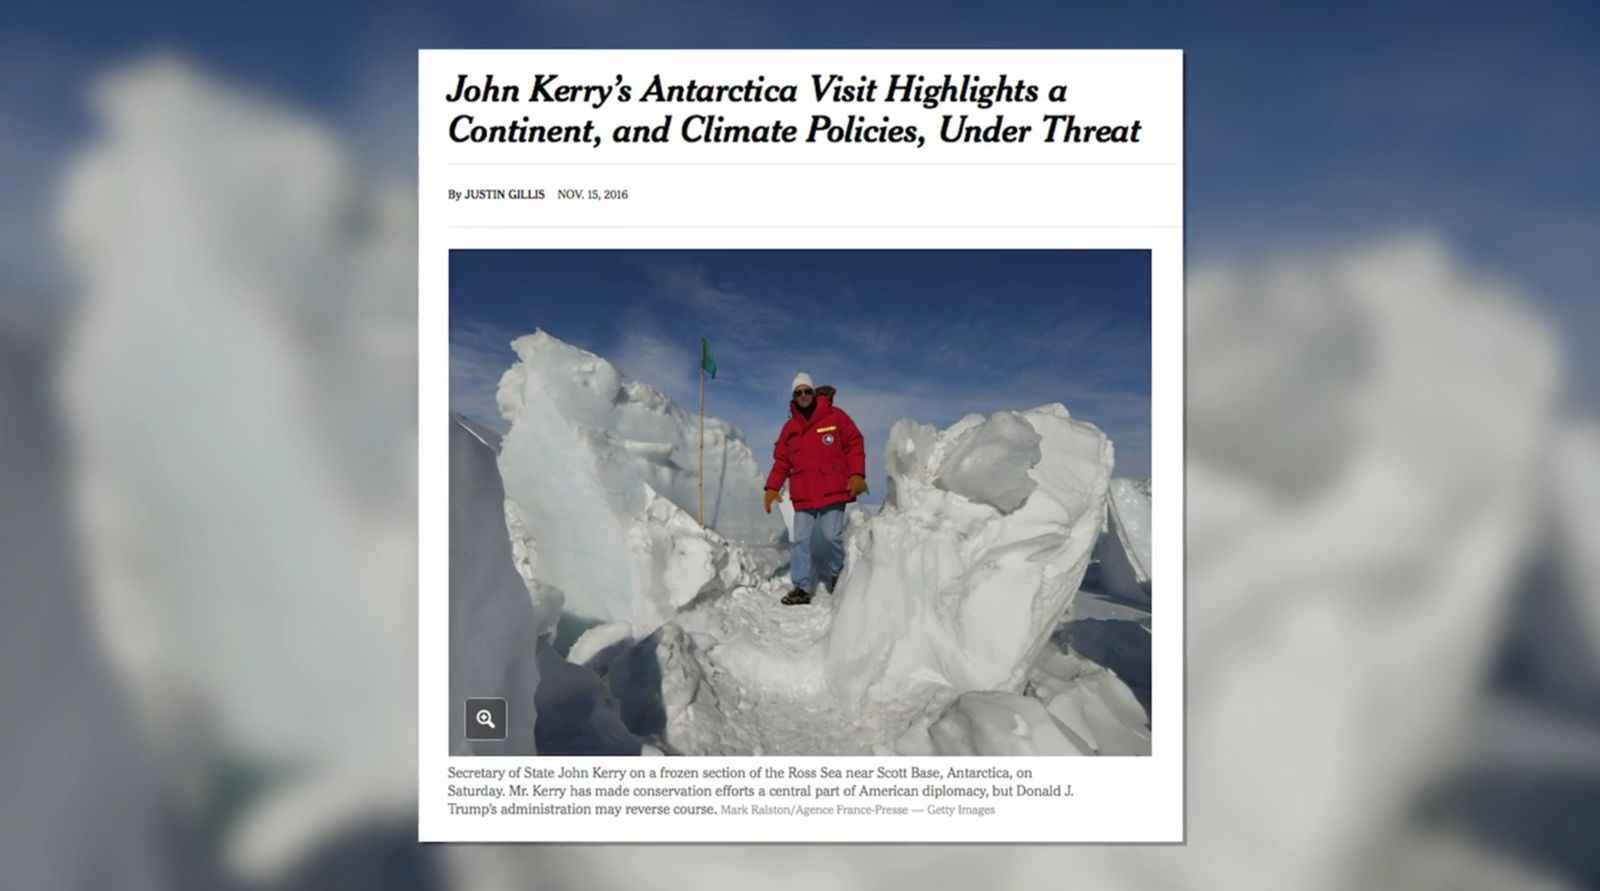 https://de.spherebeingalliance.com/media/img/1600x0/2017-02/10_Article_on_John_Kerry.jpg